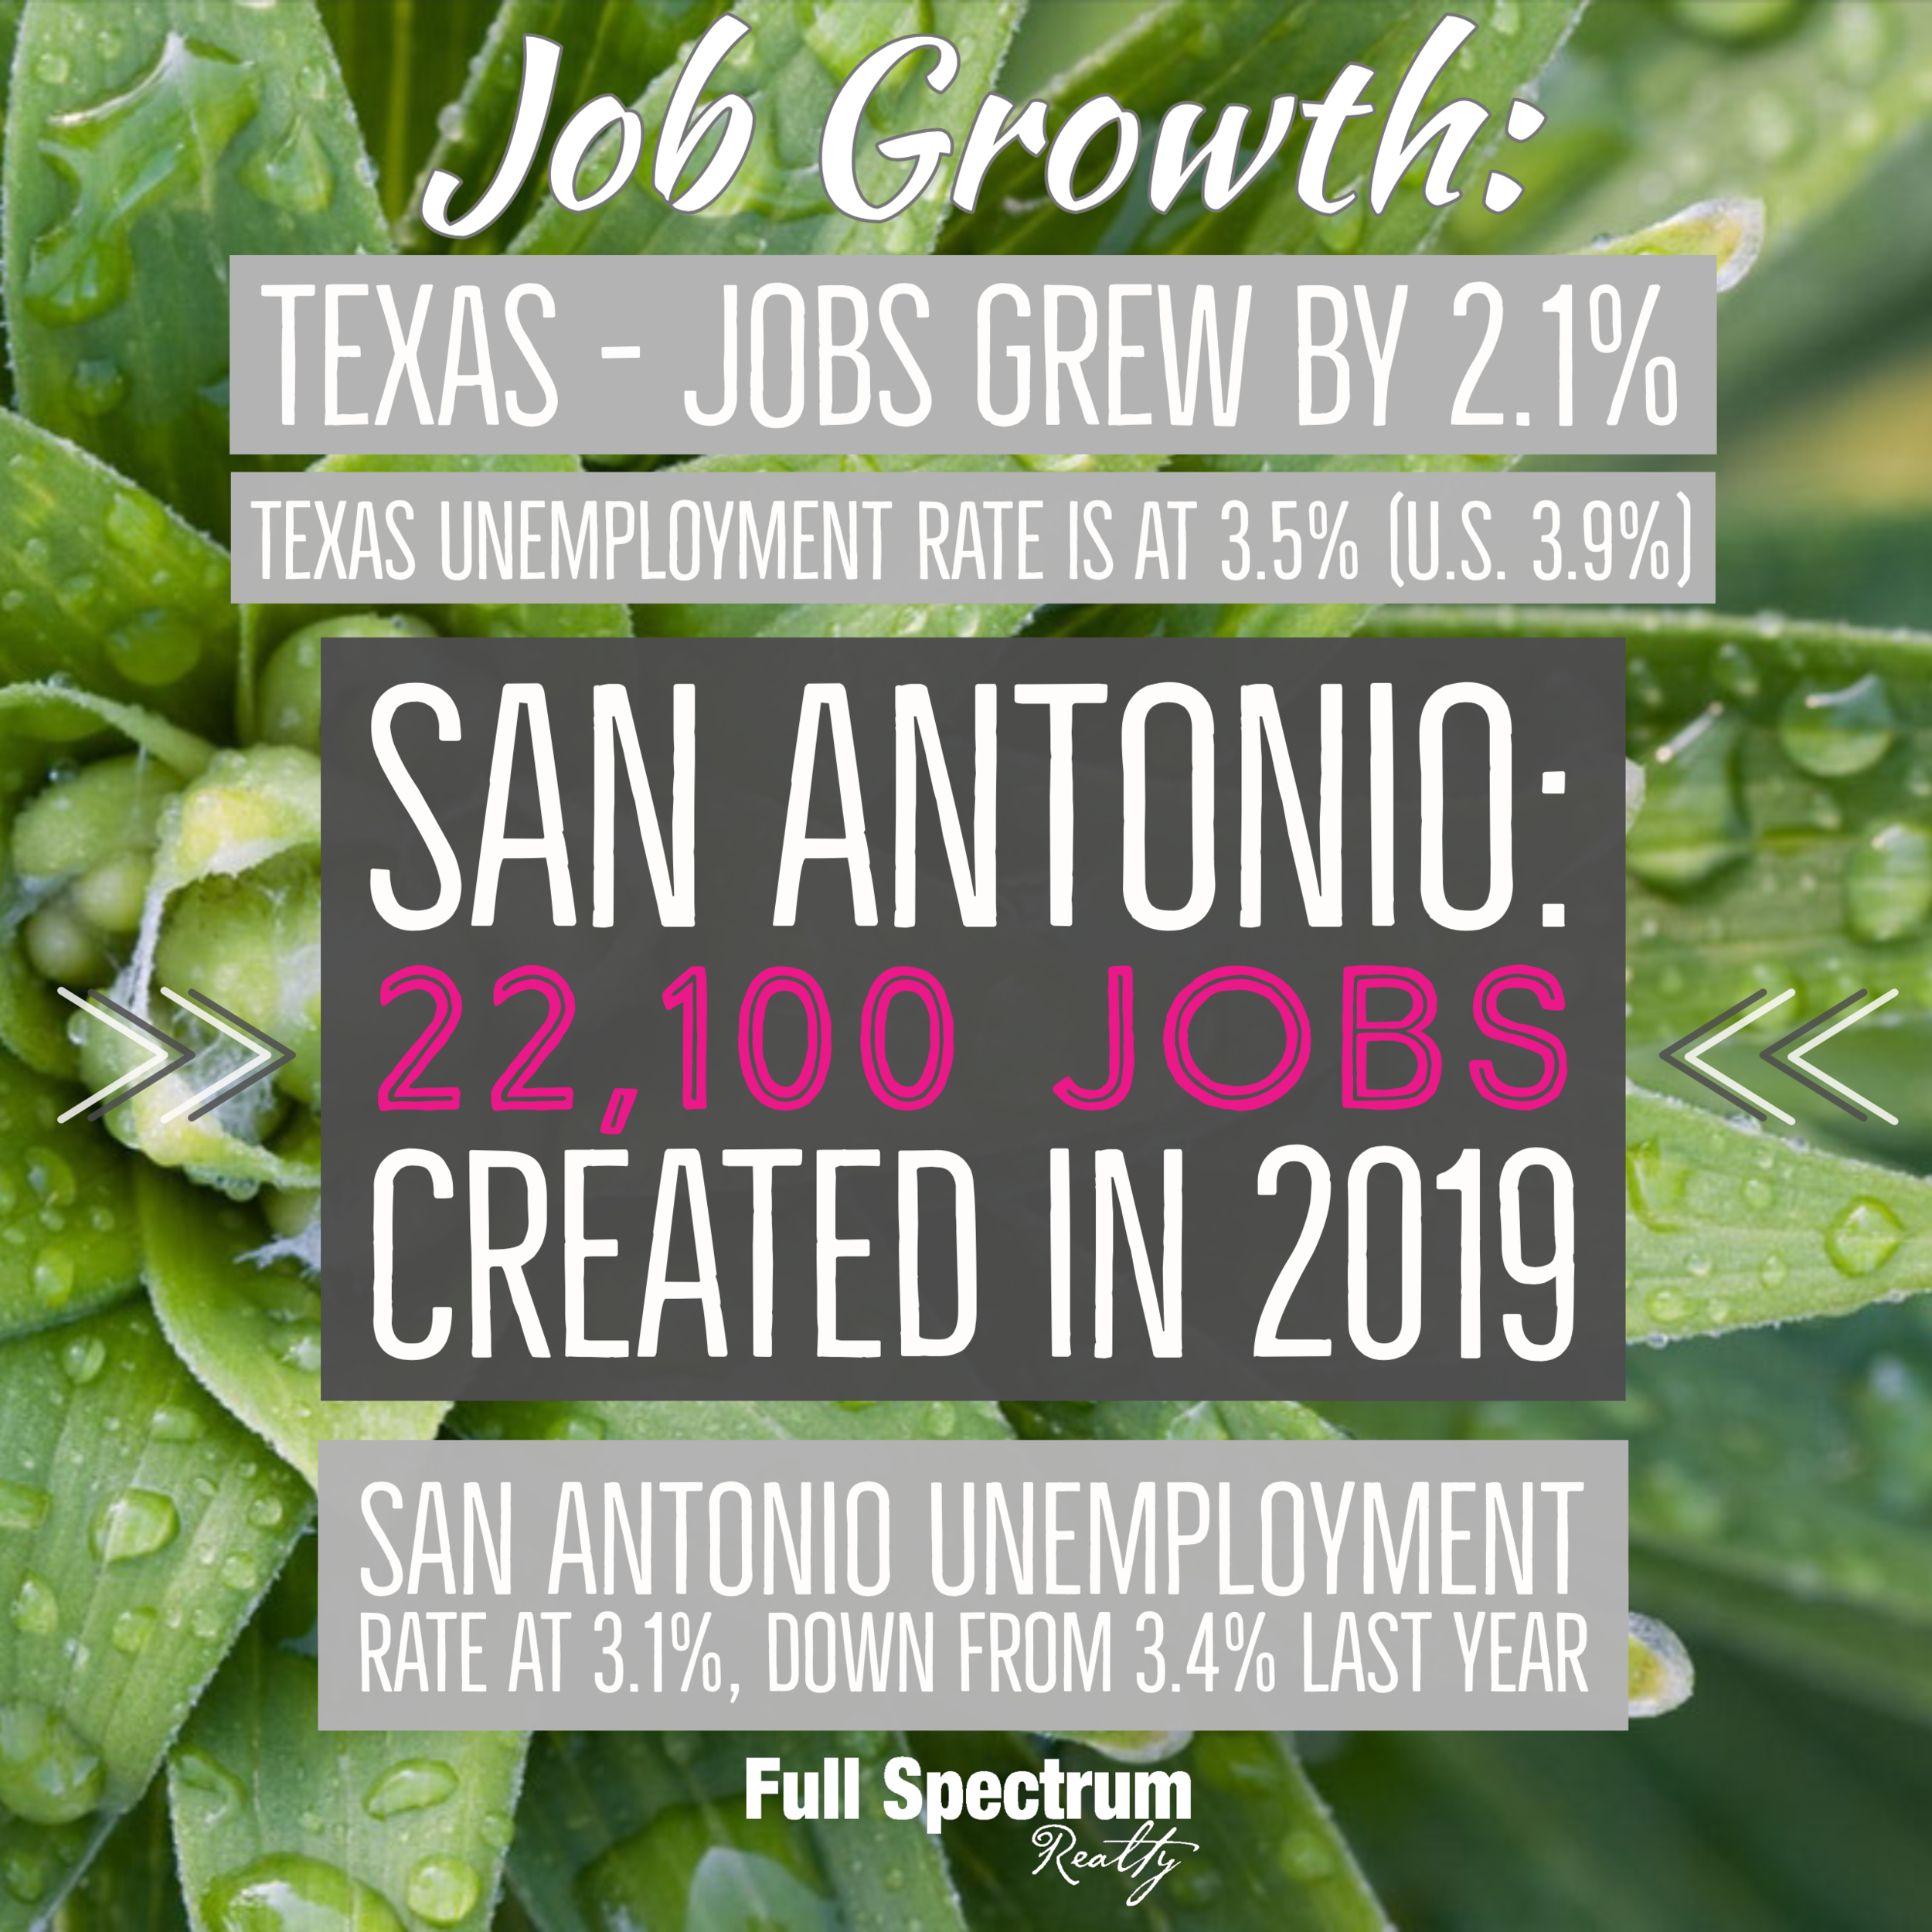 San Antonio Job Growth